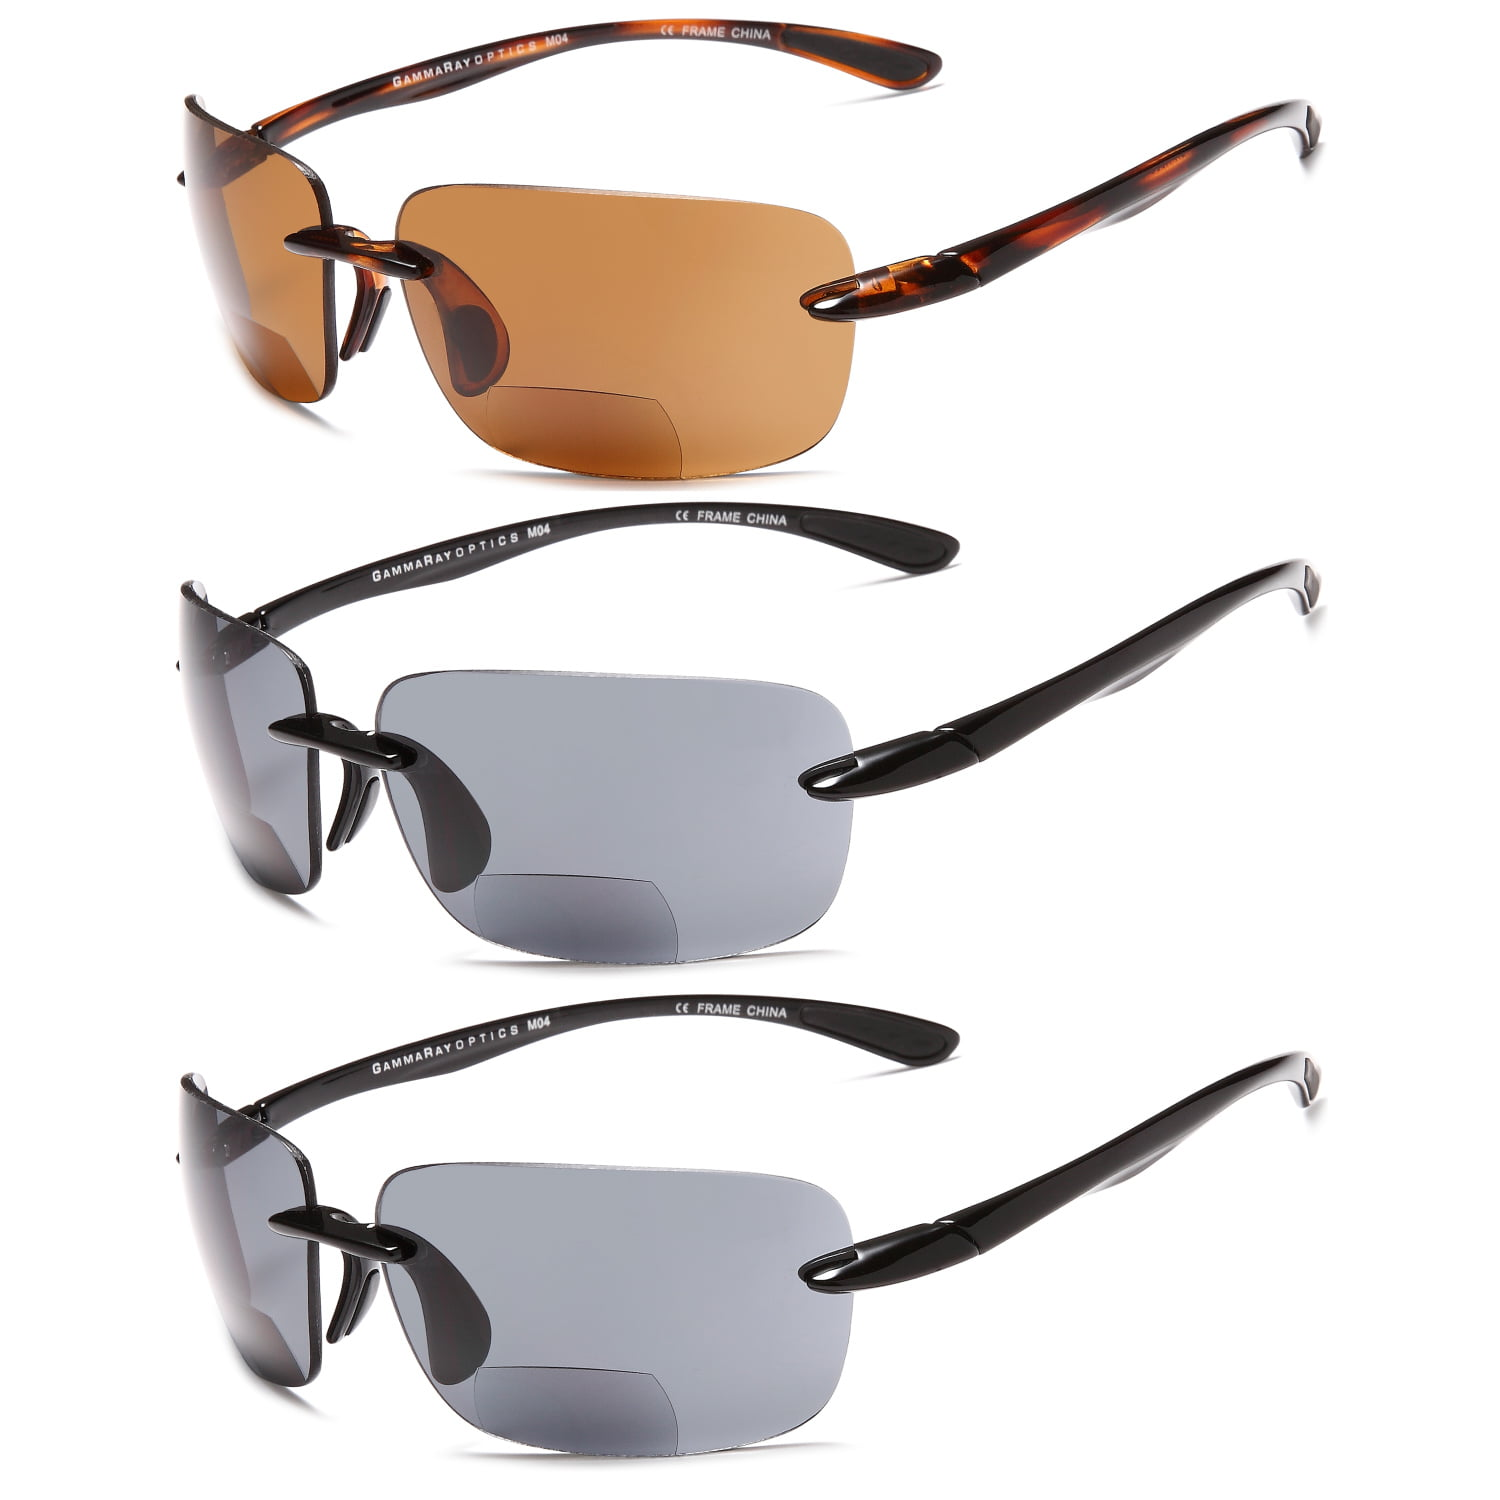 066fc3cc741 Gamma Ray Optics - GAMMA RAY 3 Pairs of Sports Bifocal Sunglasses Readers  for Biking Golfing Running UV400 Protection Outdoor Reading Glasses for Men  and ...